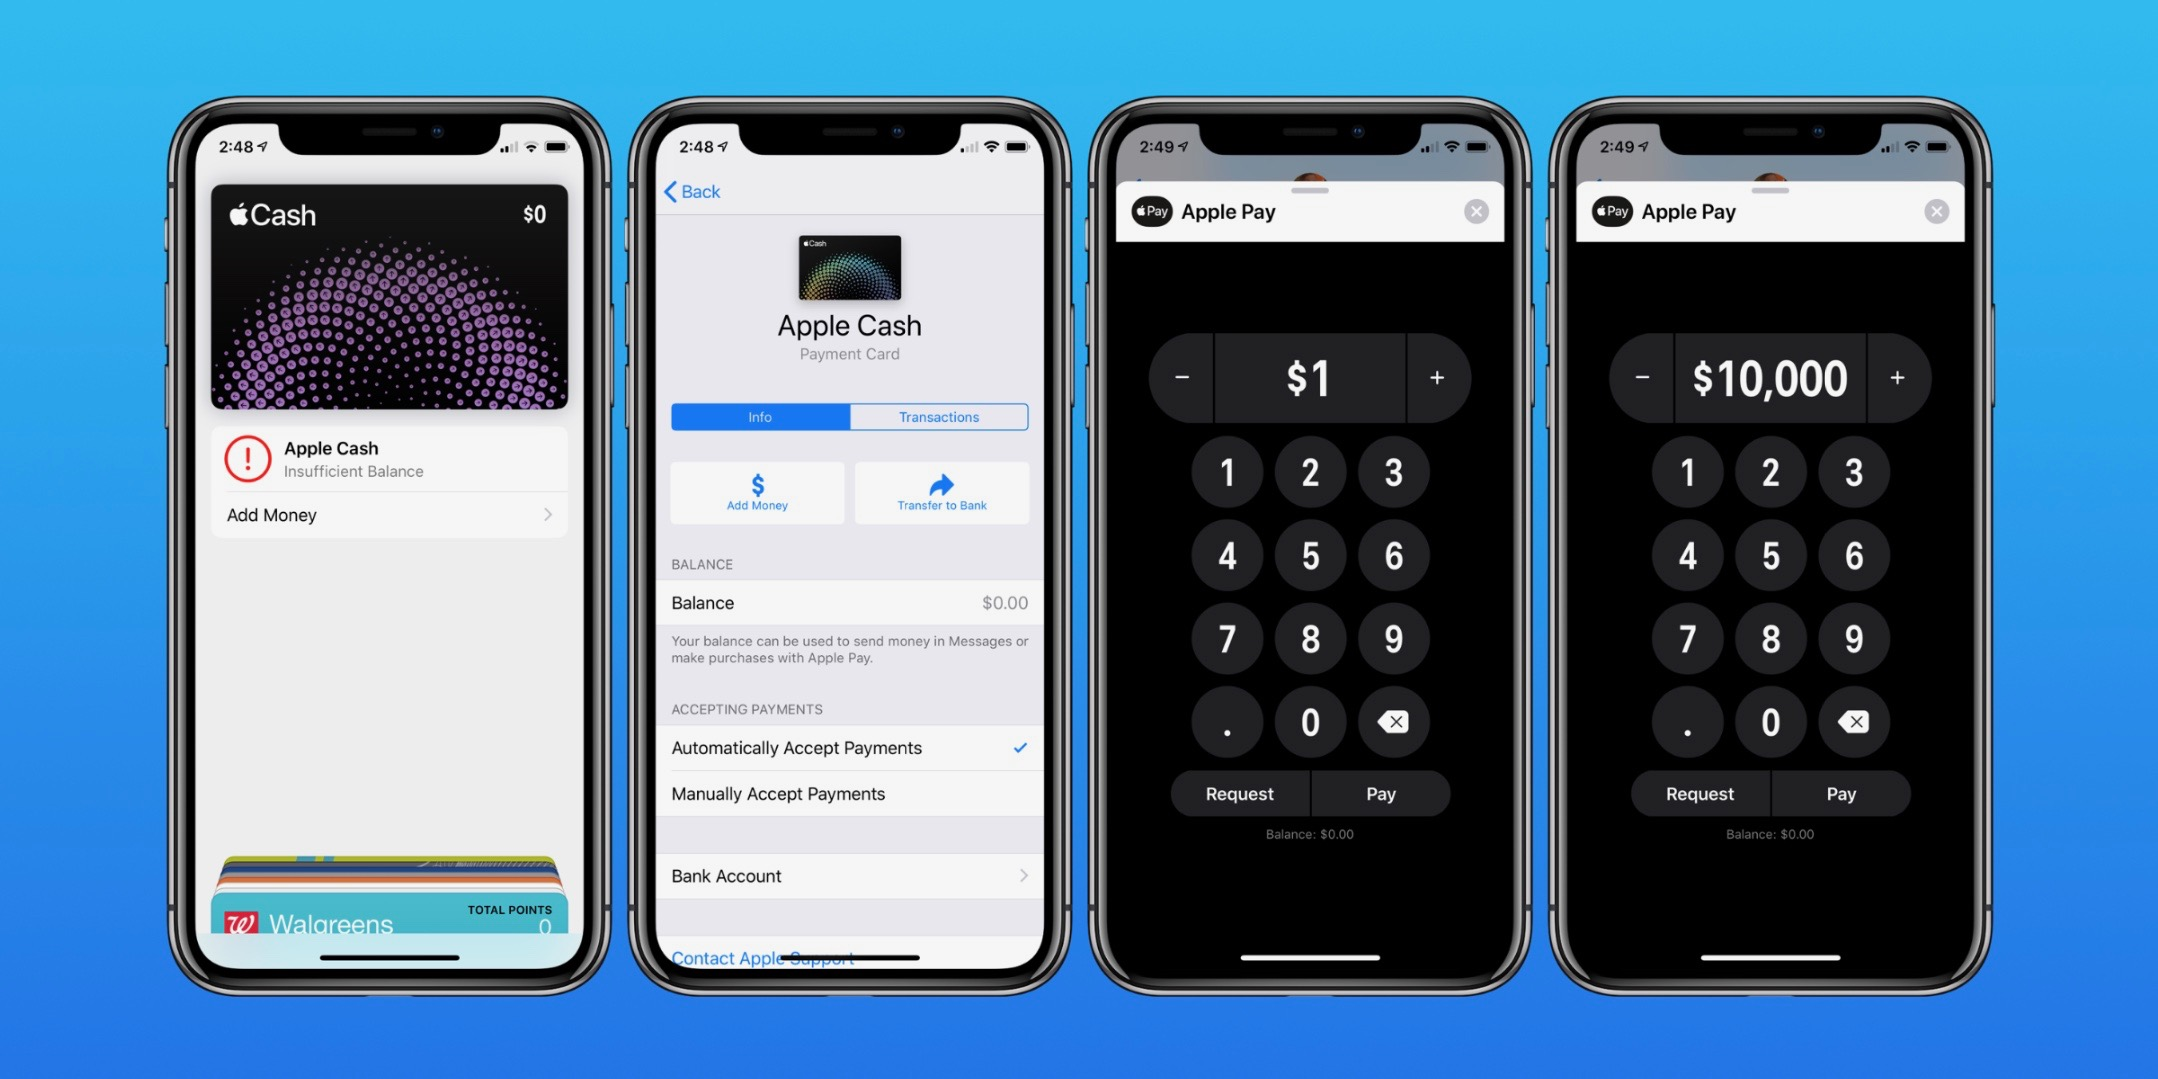 Apple Cash: How much can you send and receive?